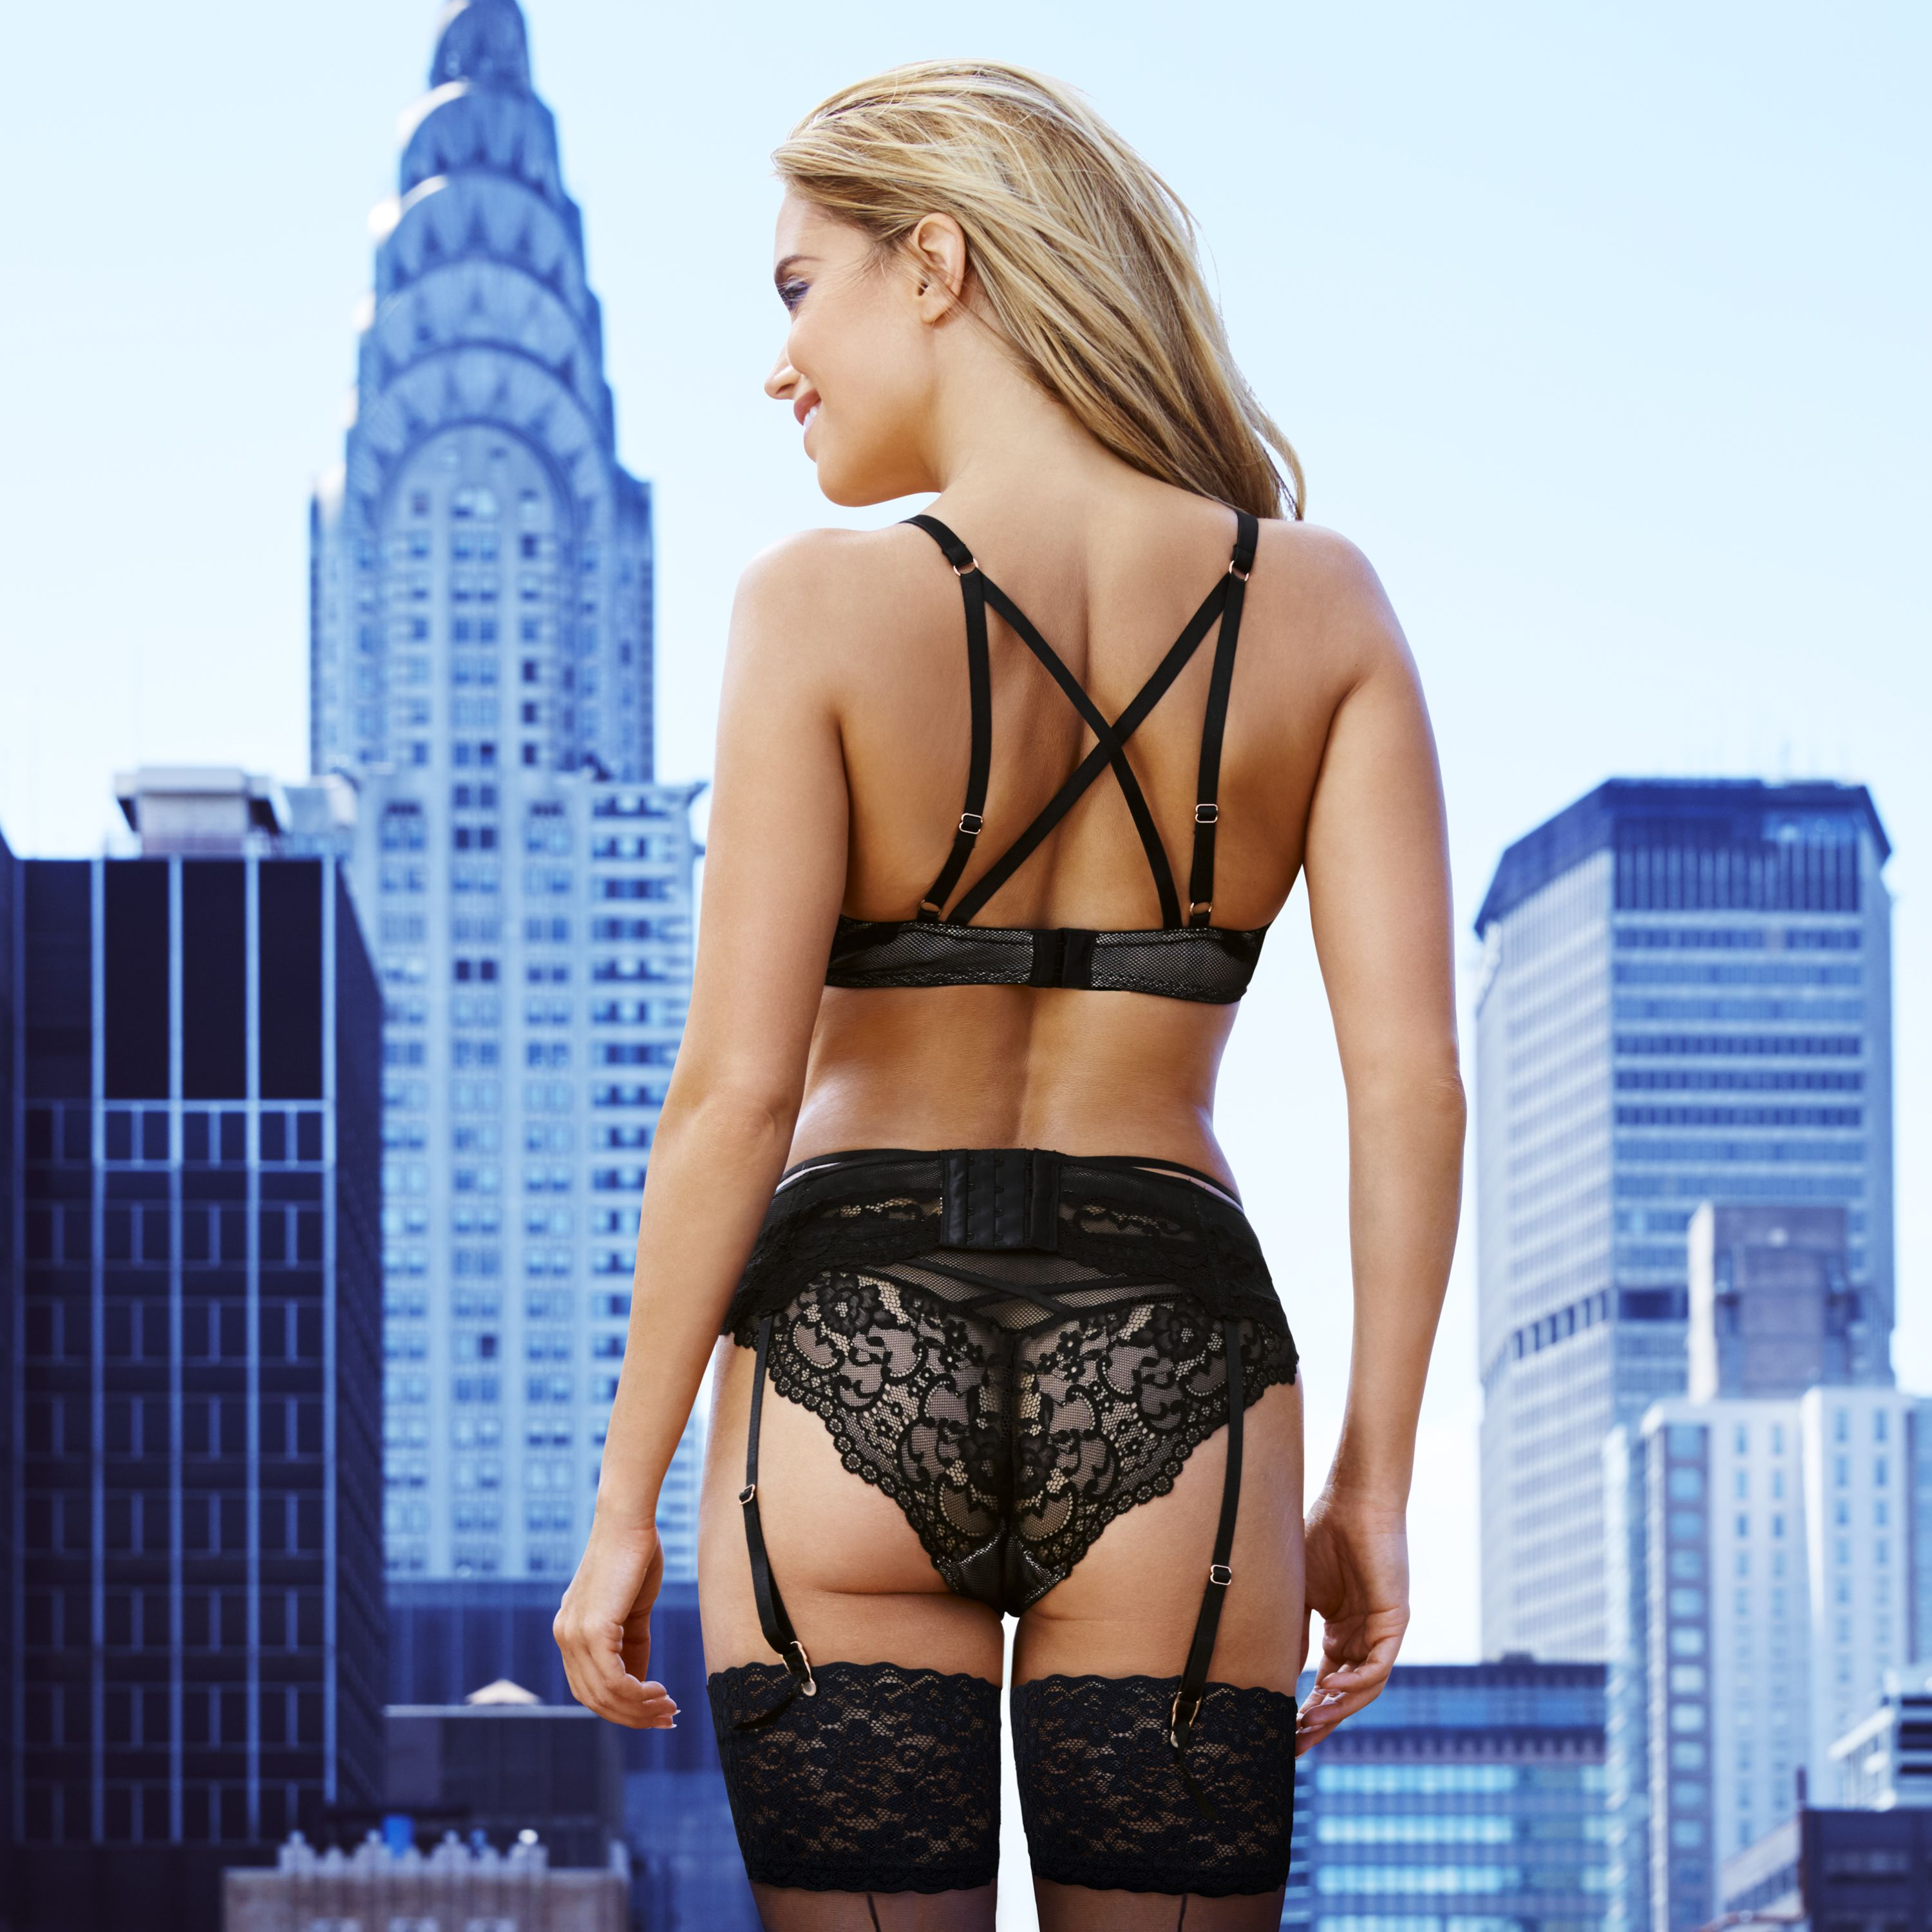 HACK! TV Show Host Sylvie Meis Booty Pics • Page 4